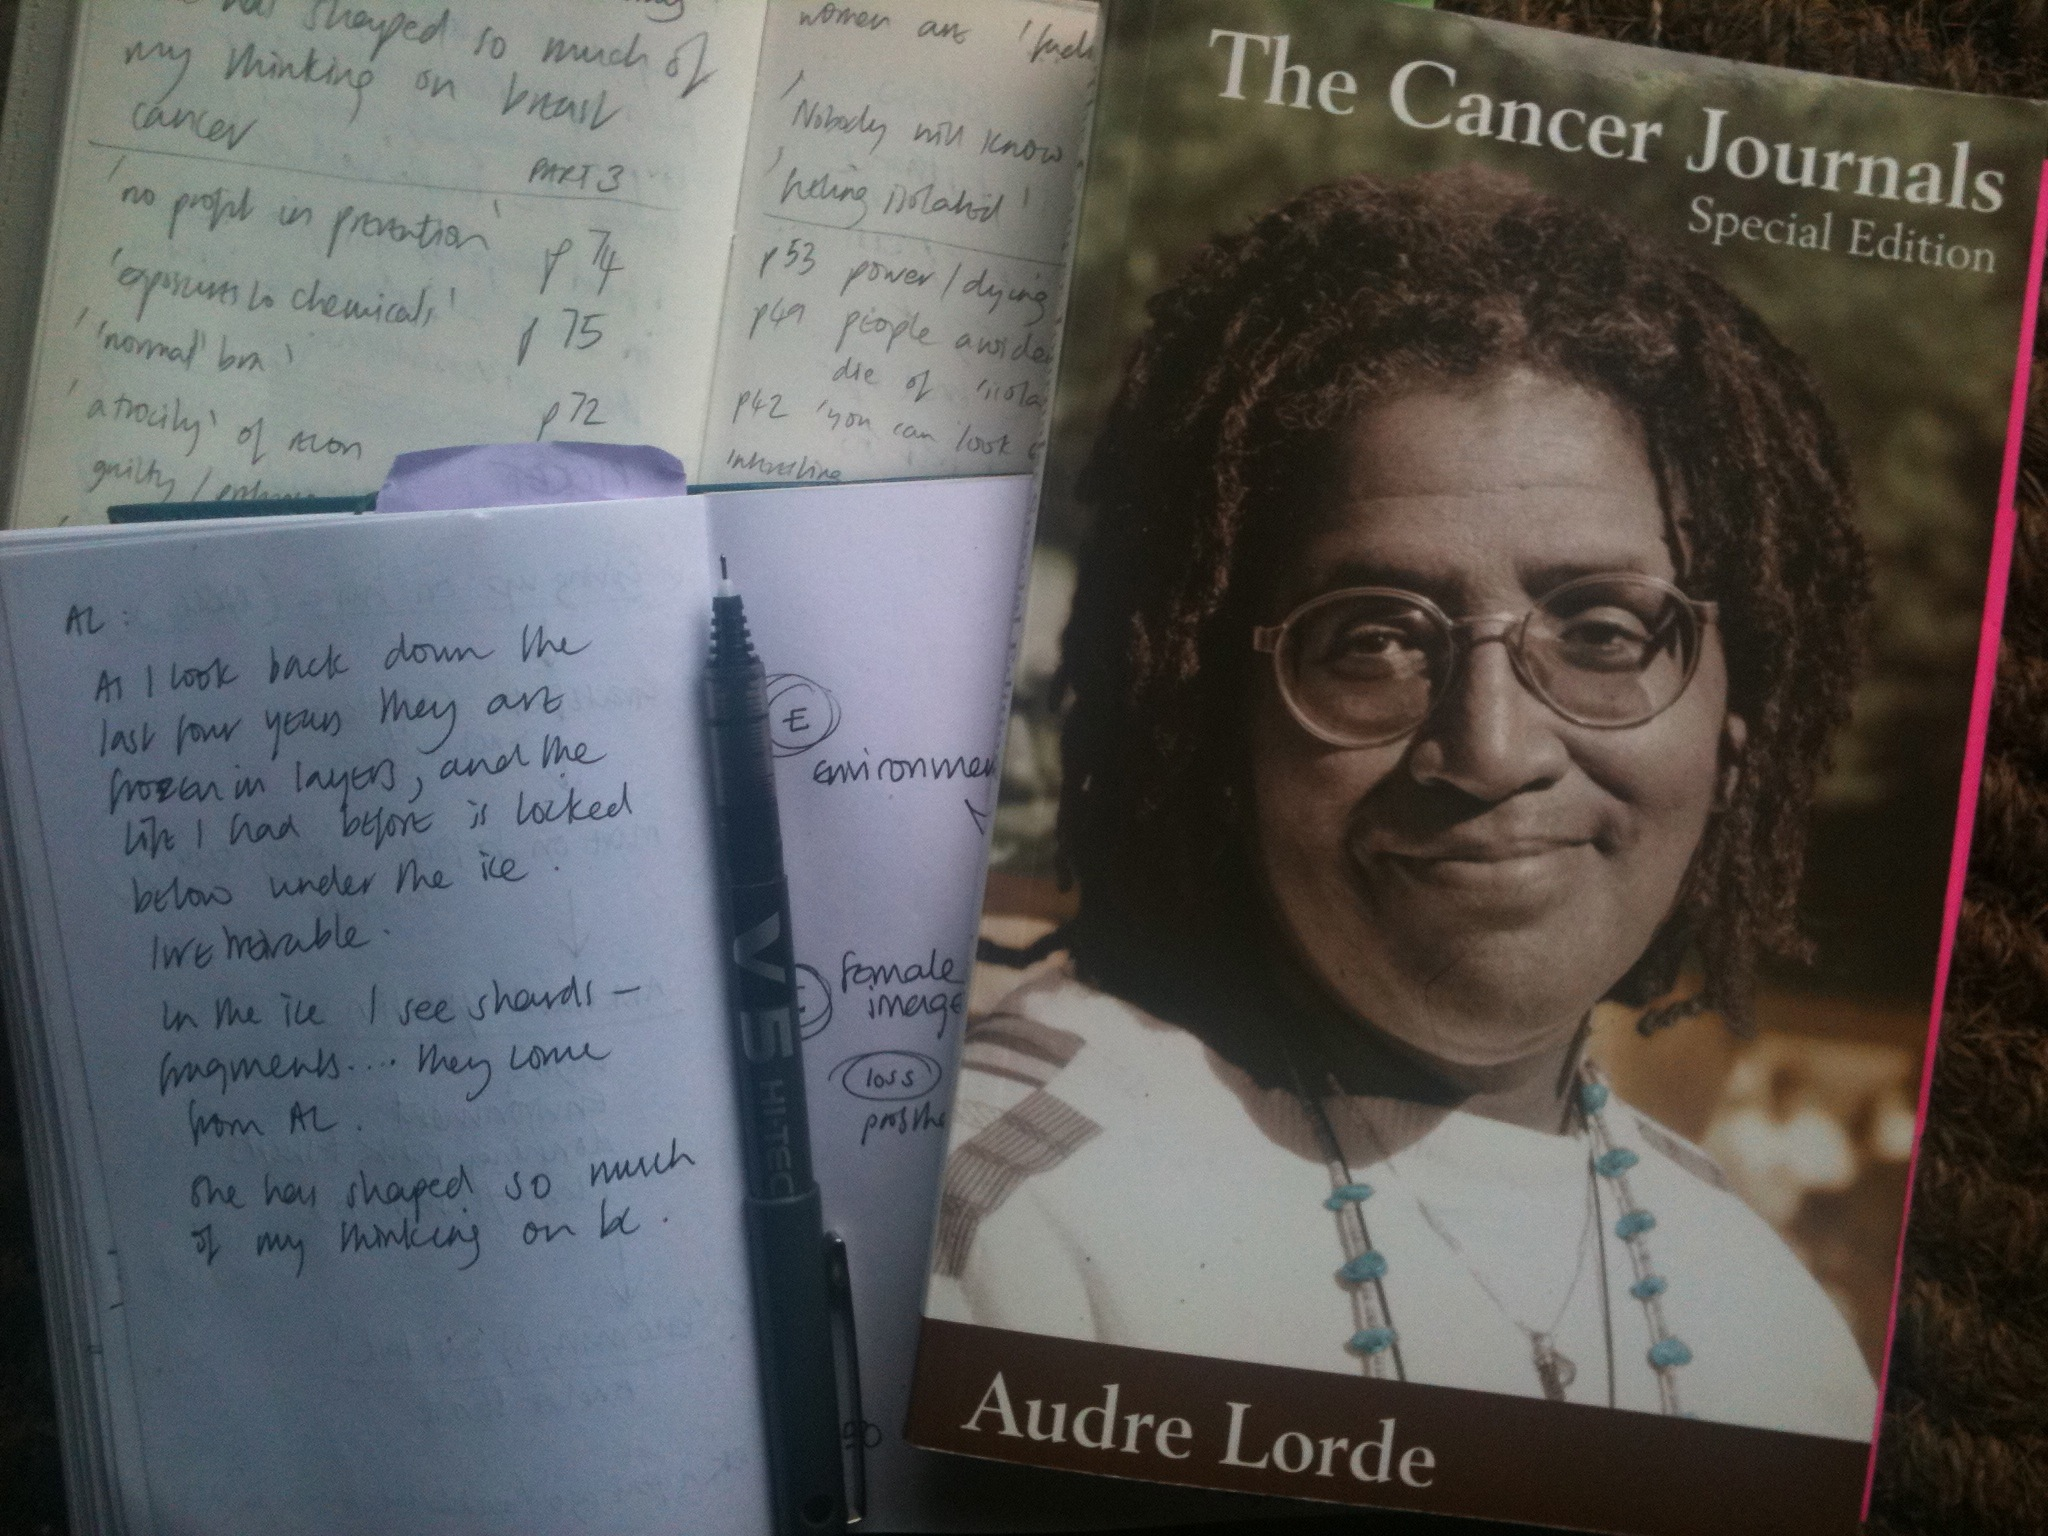 The Cancer Journals - Audre Lorde - Google Books